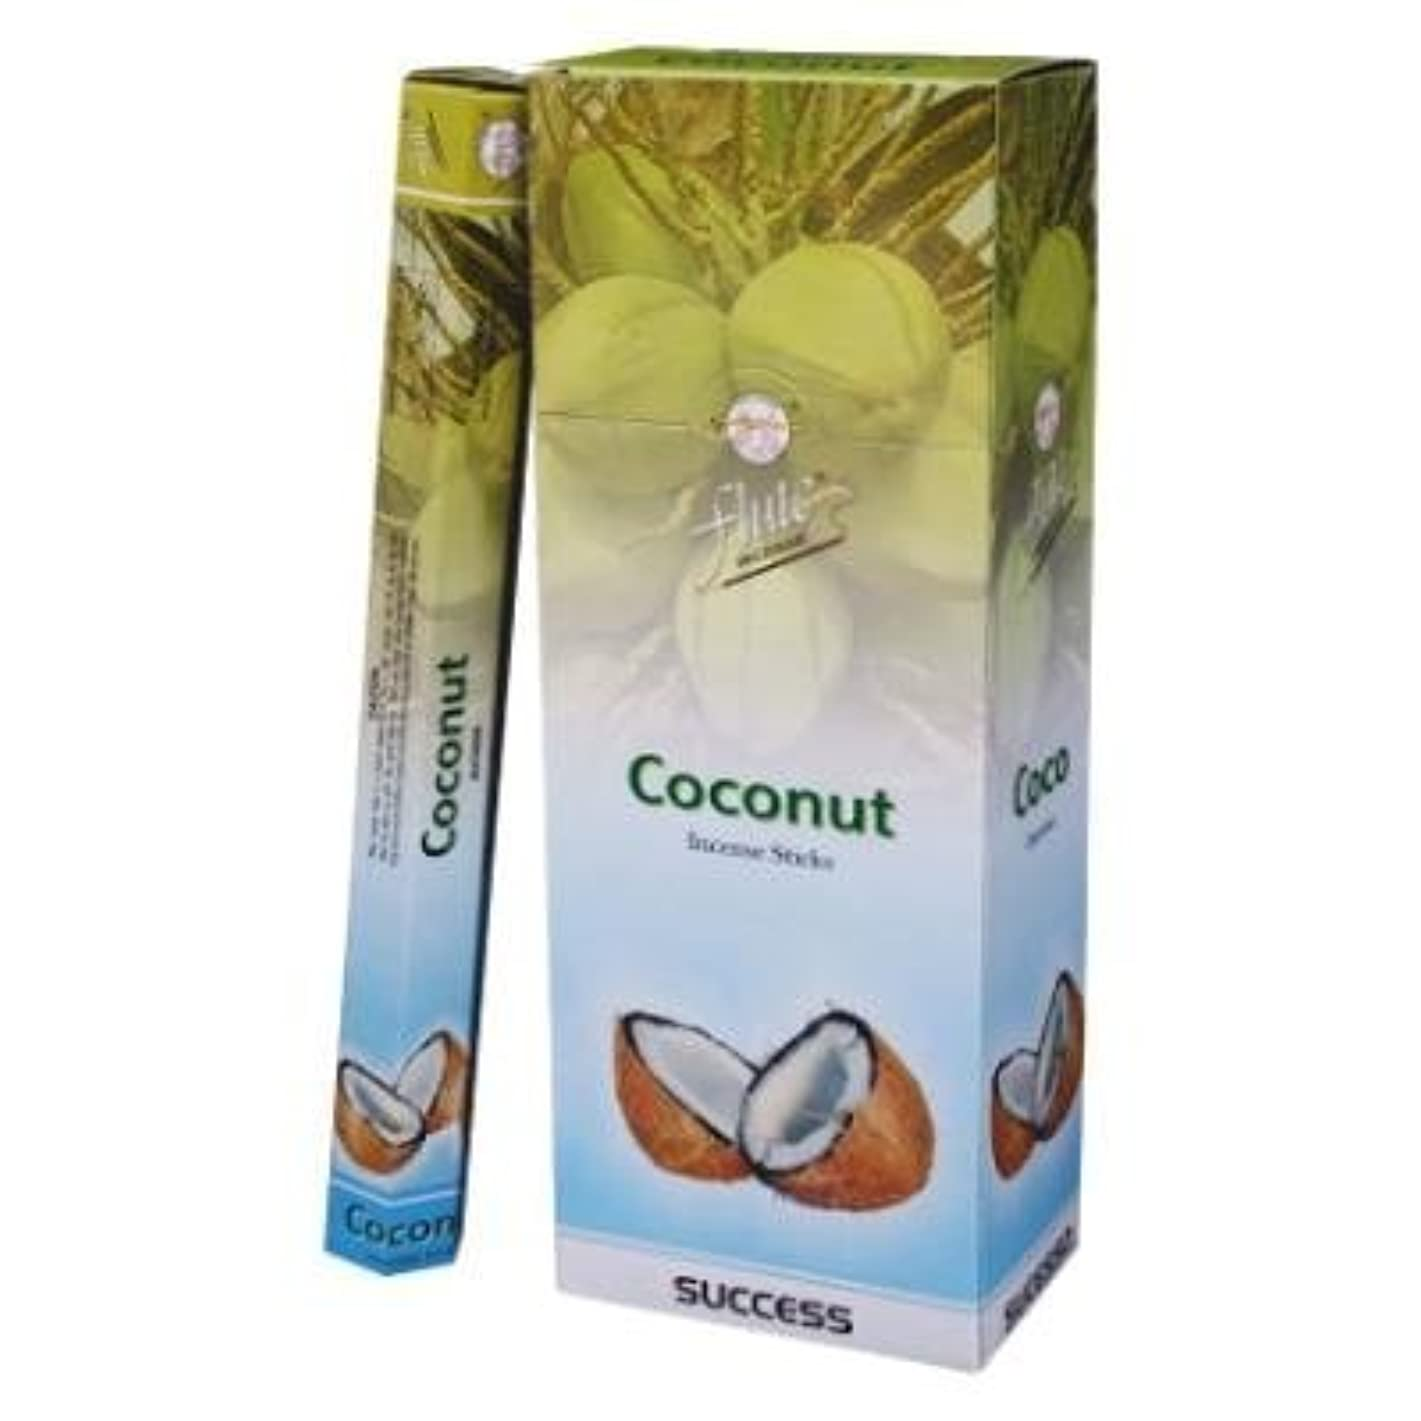 補正遅い巨大なFlute Coconut Hex Incense Sticks - 20 Sticks(Single Pack) by Flute Incense [並行輸入品]